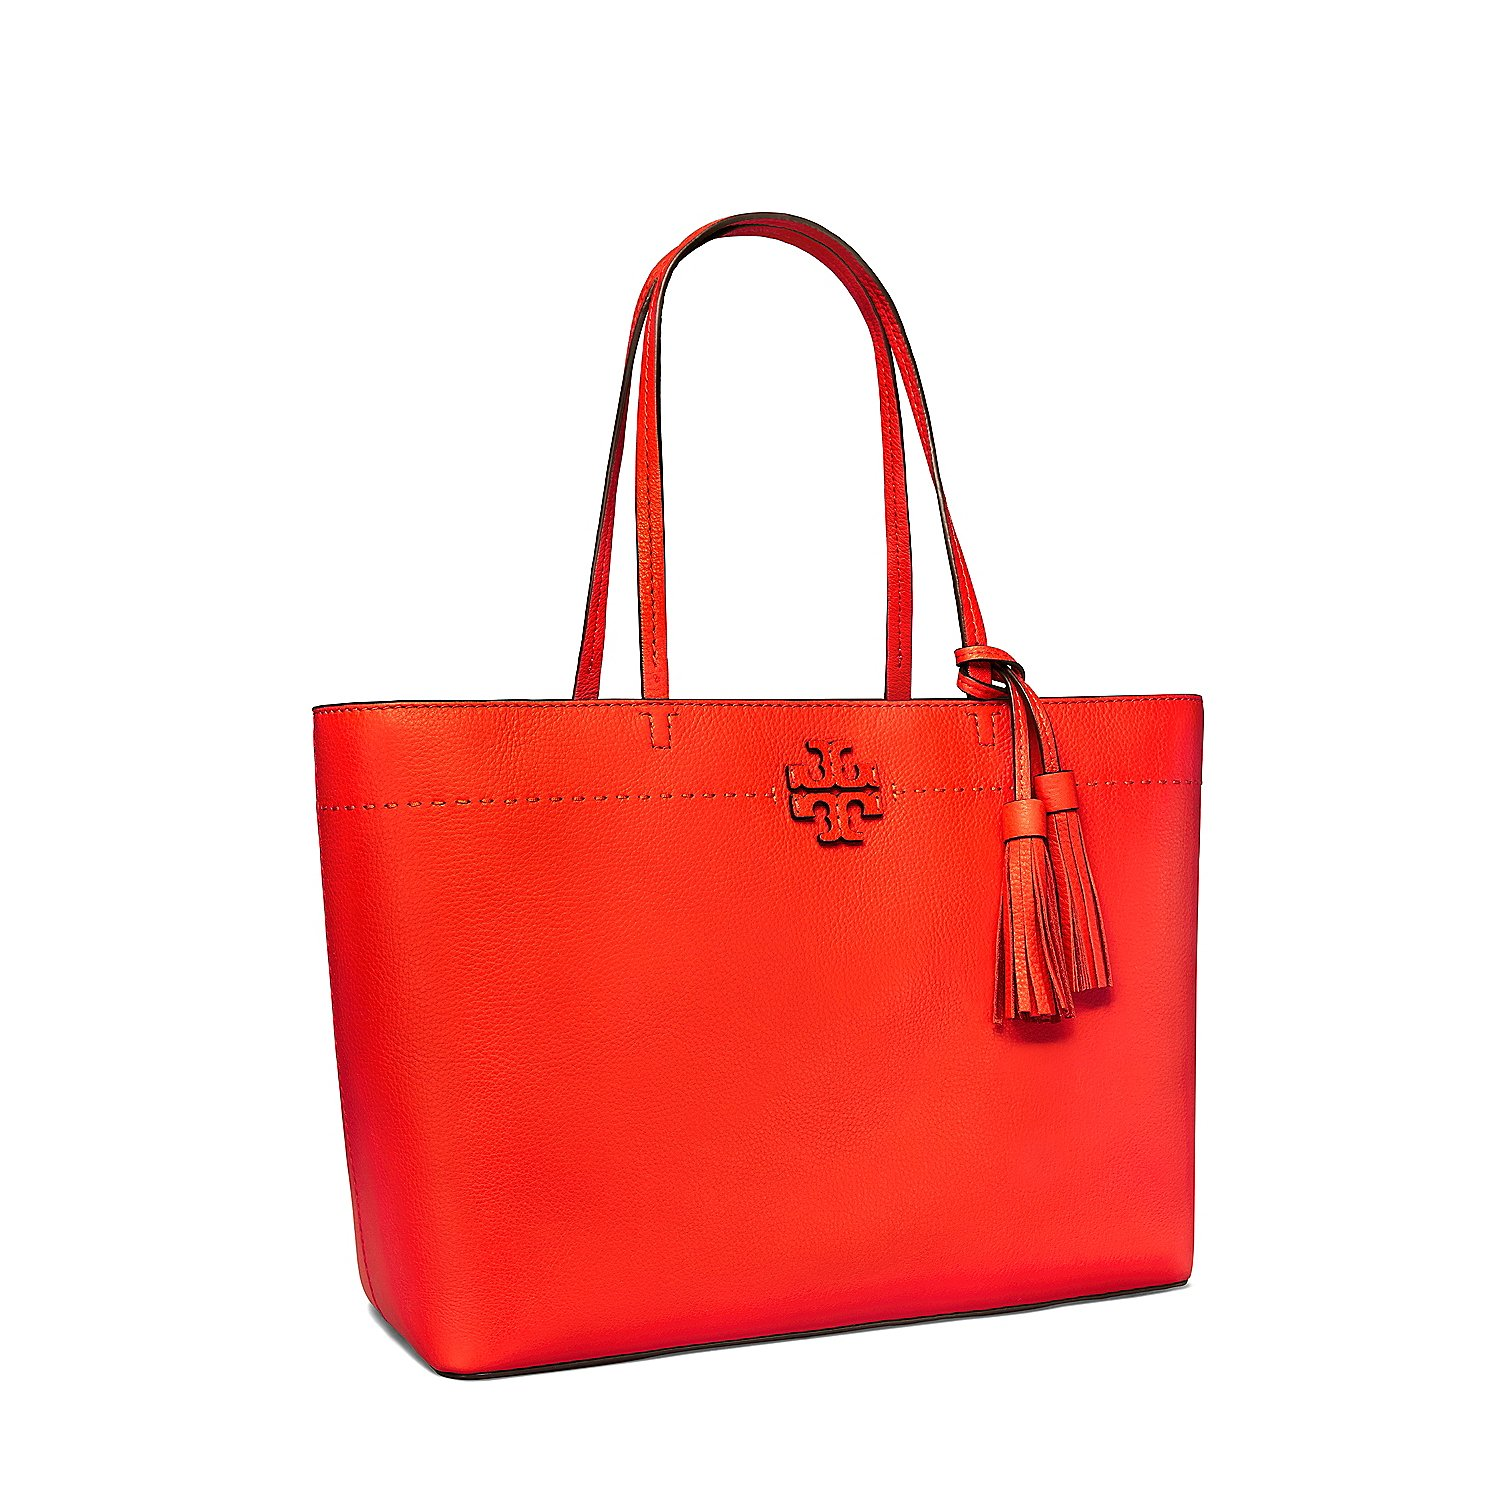 3fcd4460e42b Amazon.com  Tory Burch Pebbled Leather McGraw Tote (Poppy Red)  Clothing